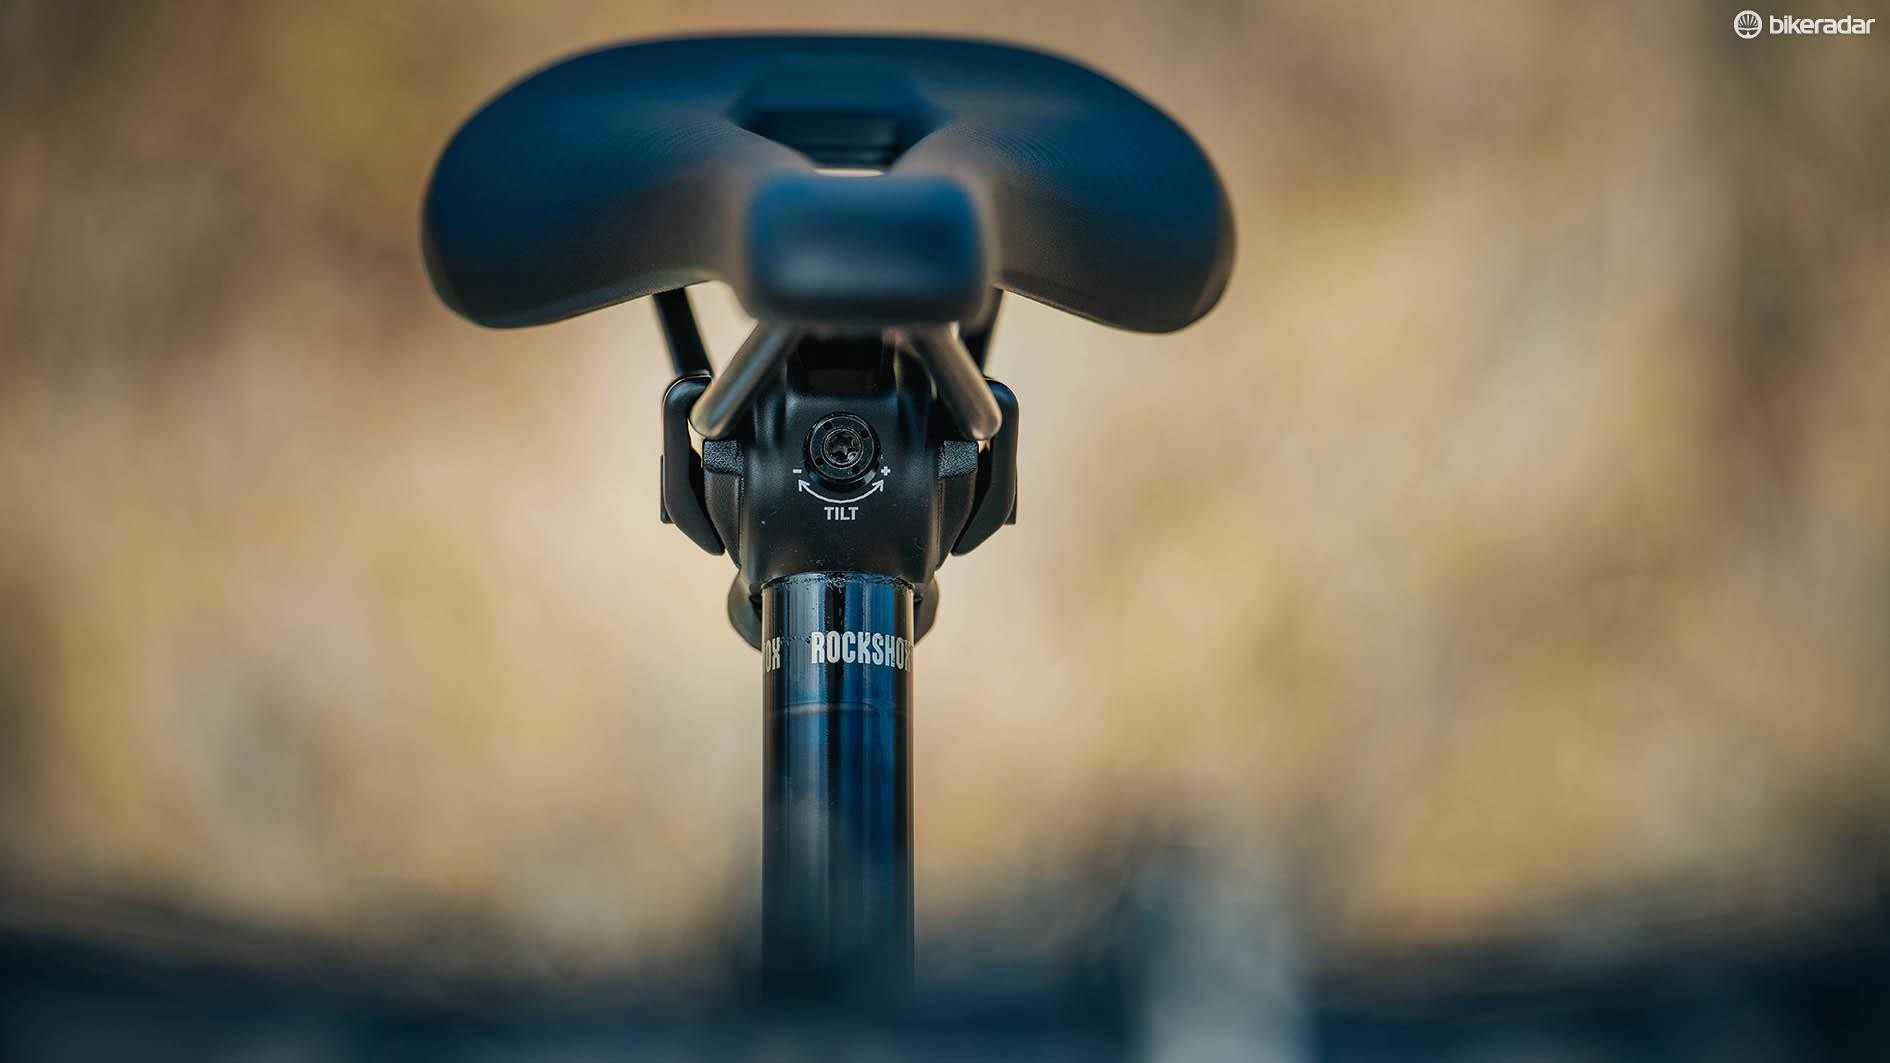 The revised head design meant RockShox had to use a single bolt saddle clamp to secure the seat. It has incorporated an additional tilt bolt though which not only helps with saddle adjustment, but also security